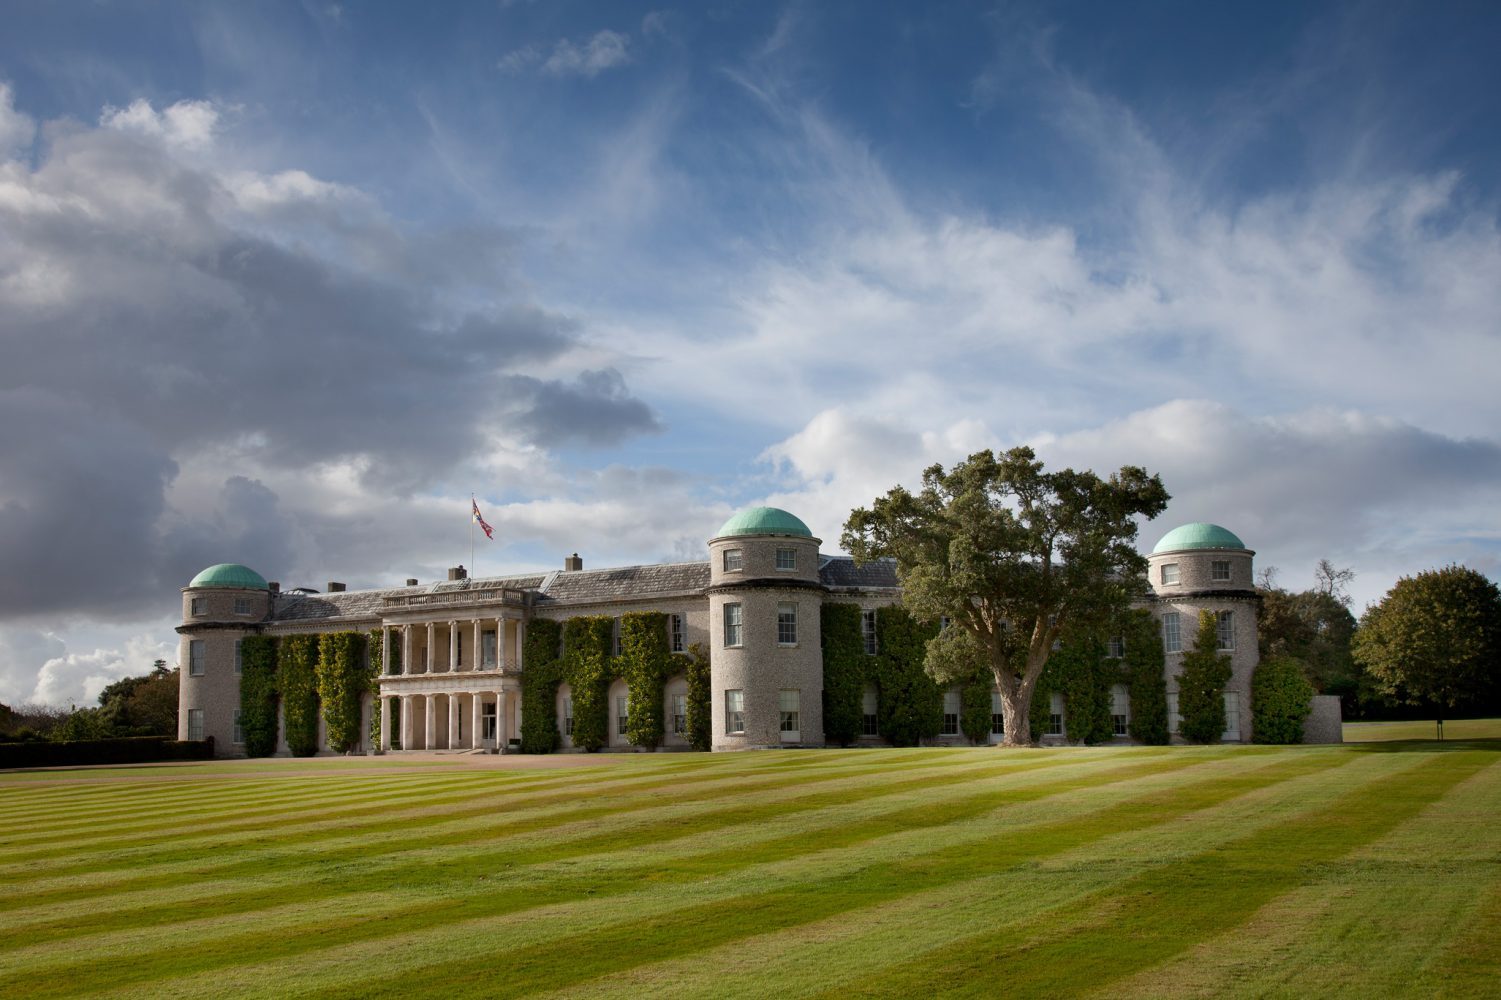 Goodwood House on a cloudy day